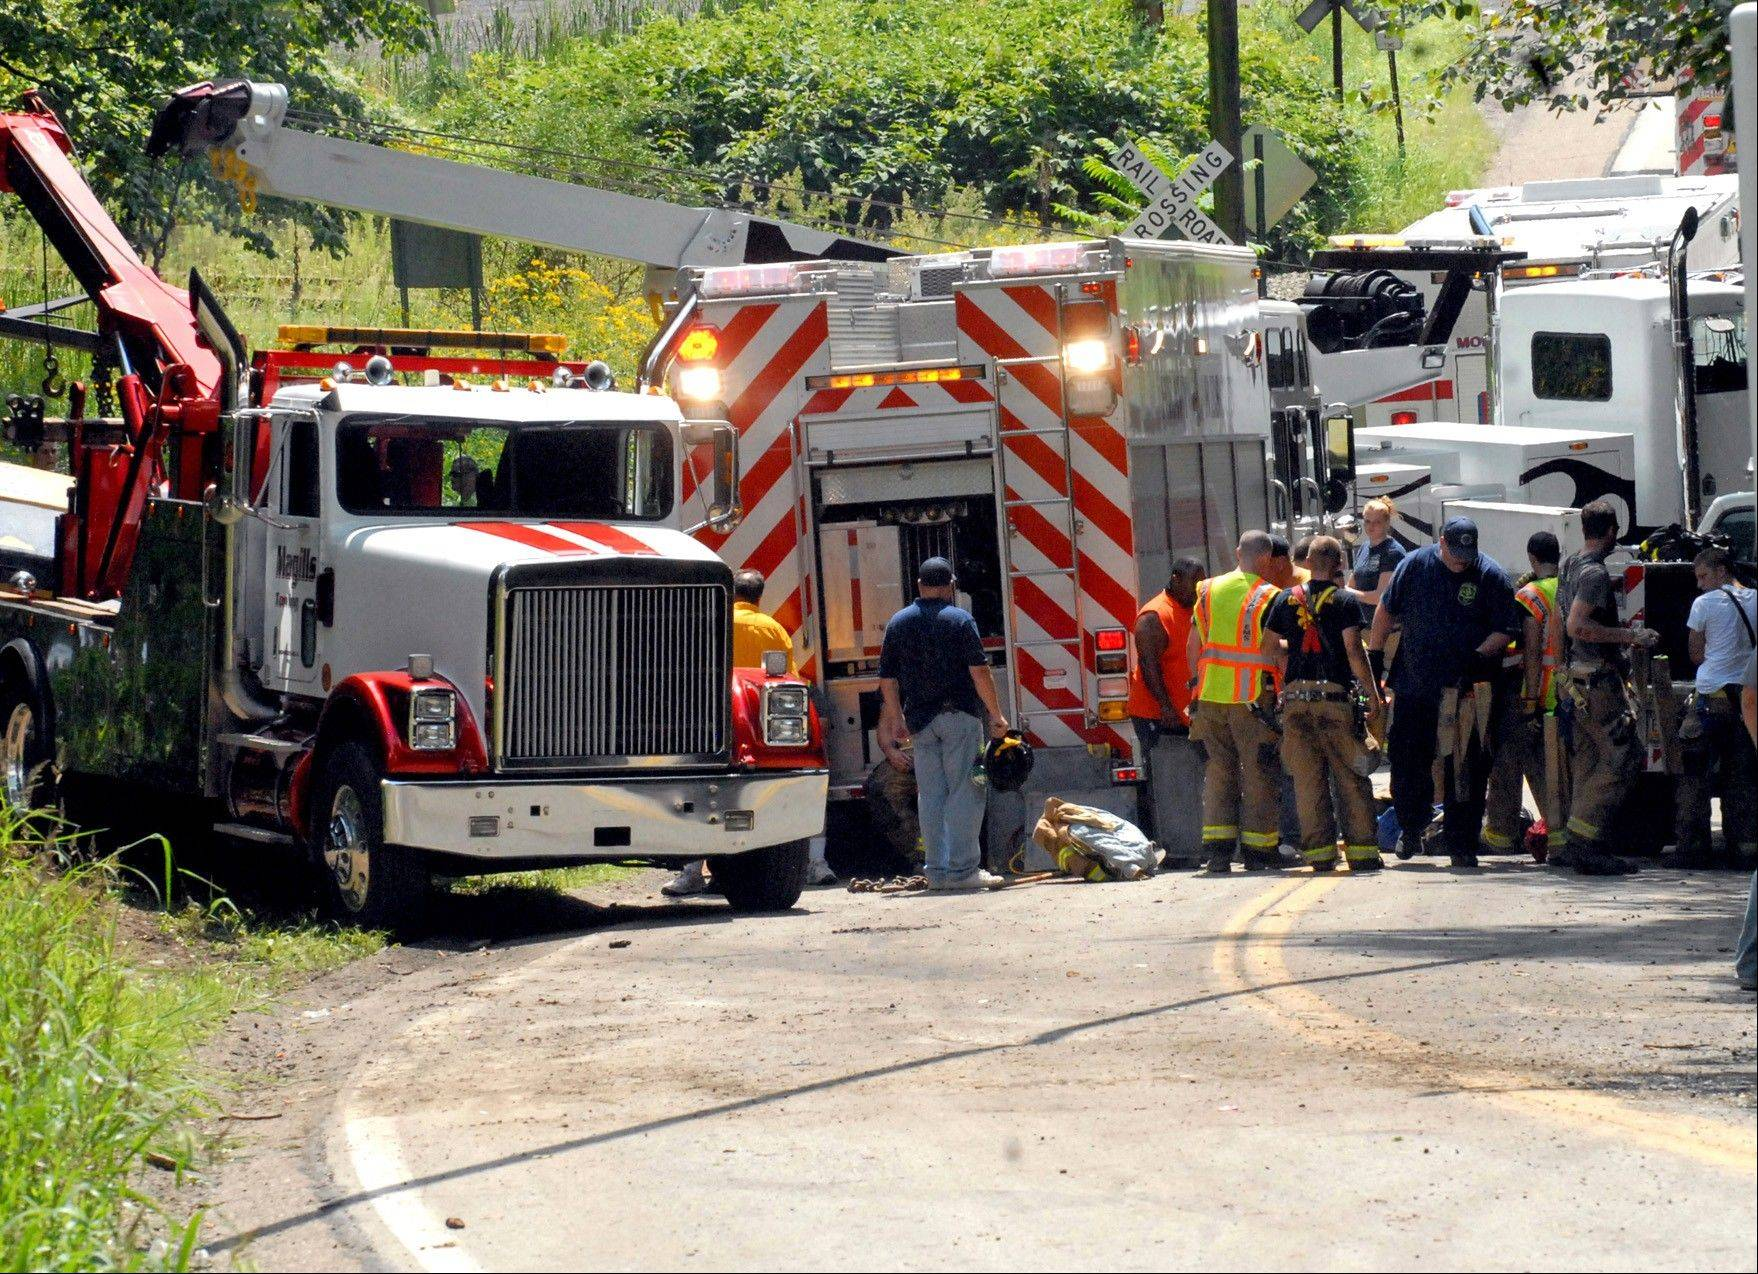 Emergency crews respond Friday to a man trapped under an asphalt steam roller truck on Saunders Station Road in Monroeville, Pa.